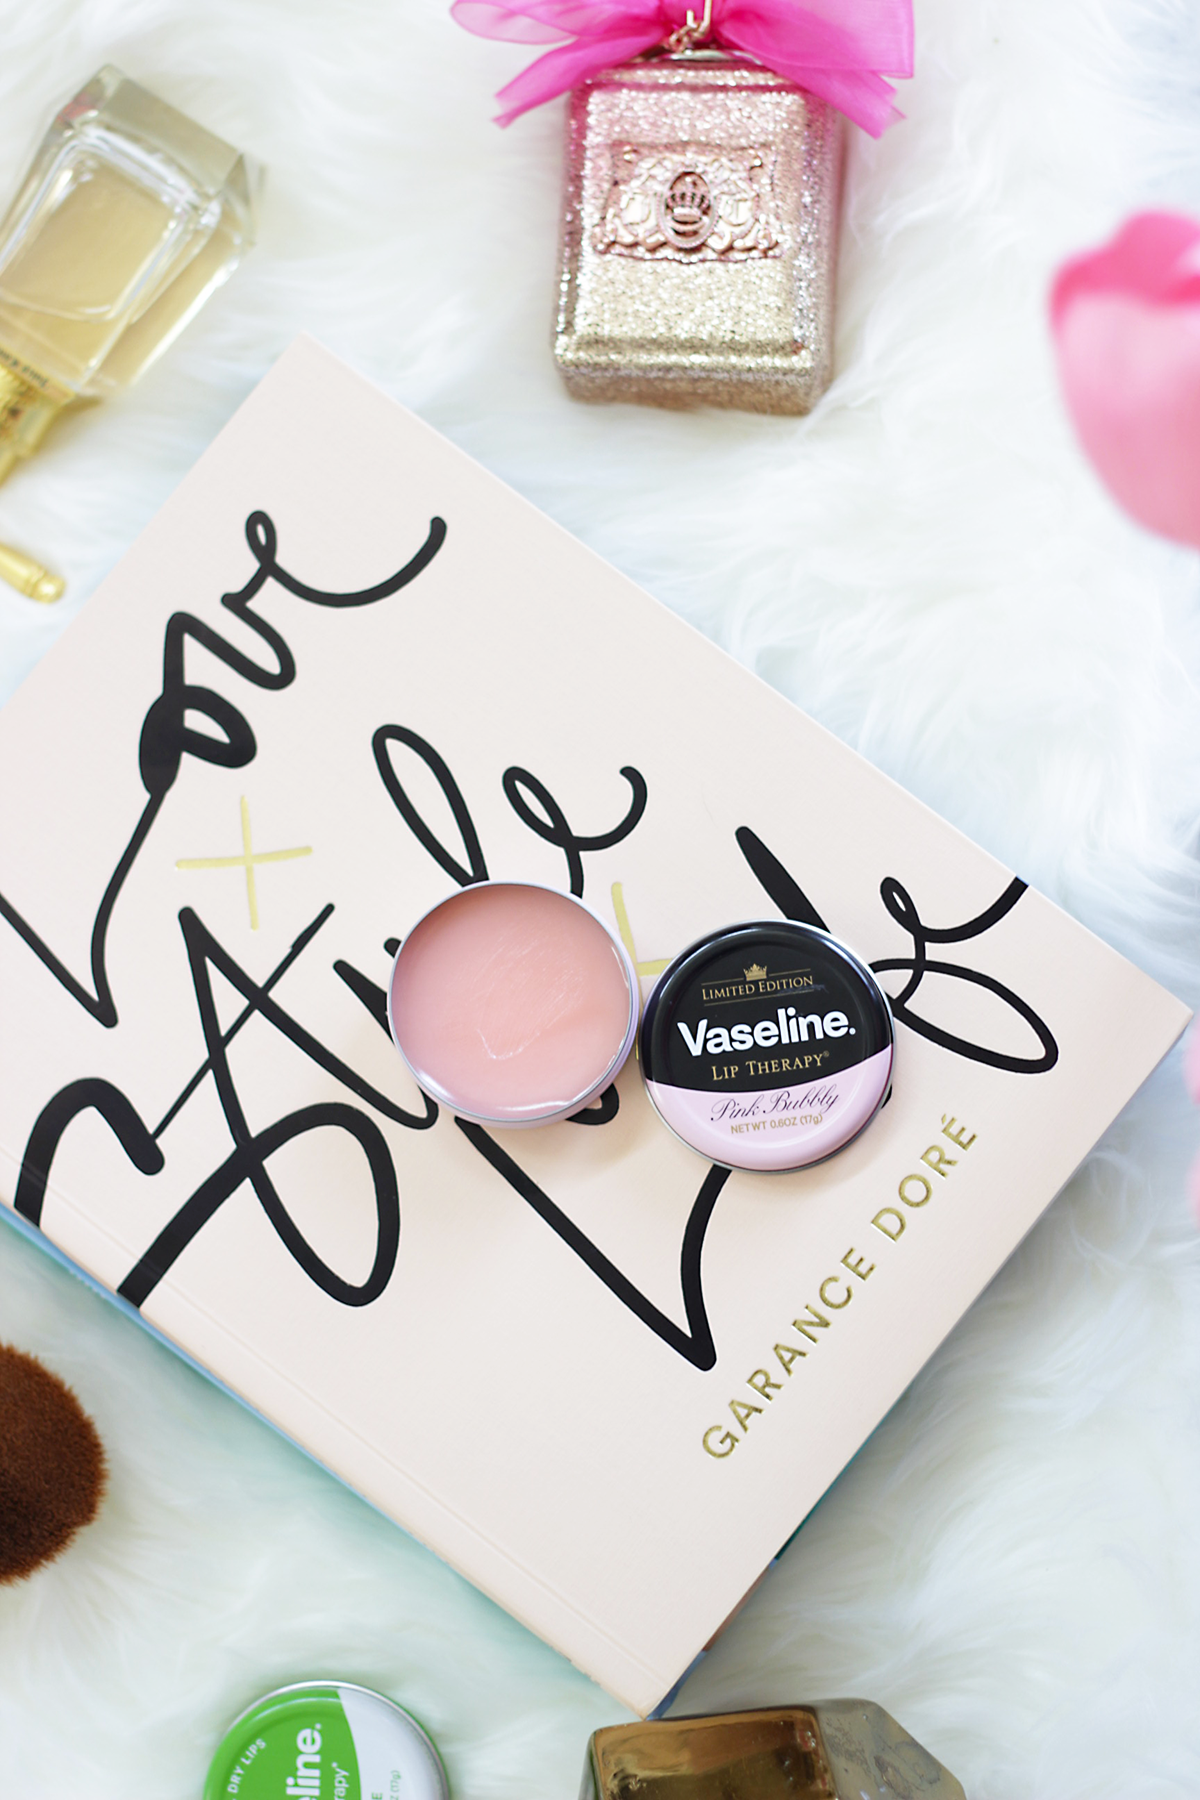 Time to pop a bit of pink bubbly with Vaseline this summer and the new Vaseline Lip Therapy in Pink Bubbly. What better way to stay kissable all summer.- Vaseline Pink Bubbly-Makeup Life and Love- #Cheers2HealthyLips